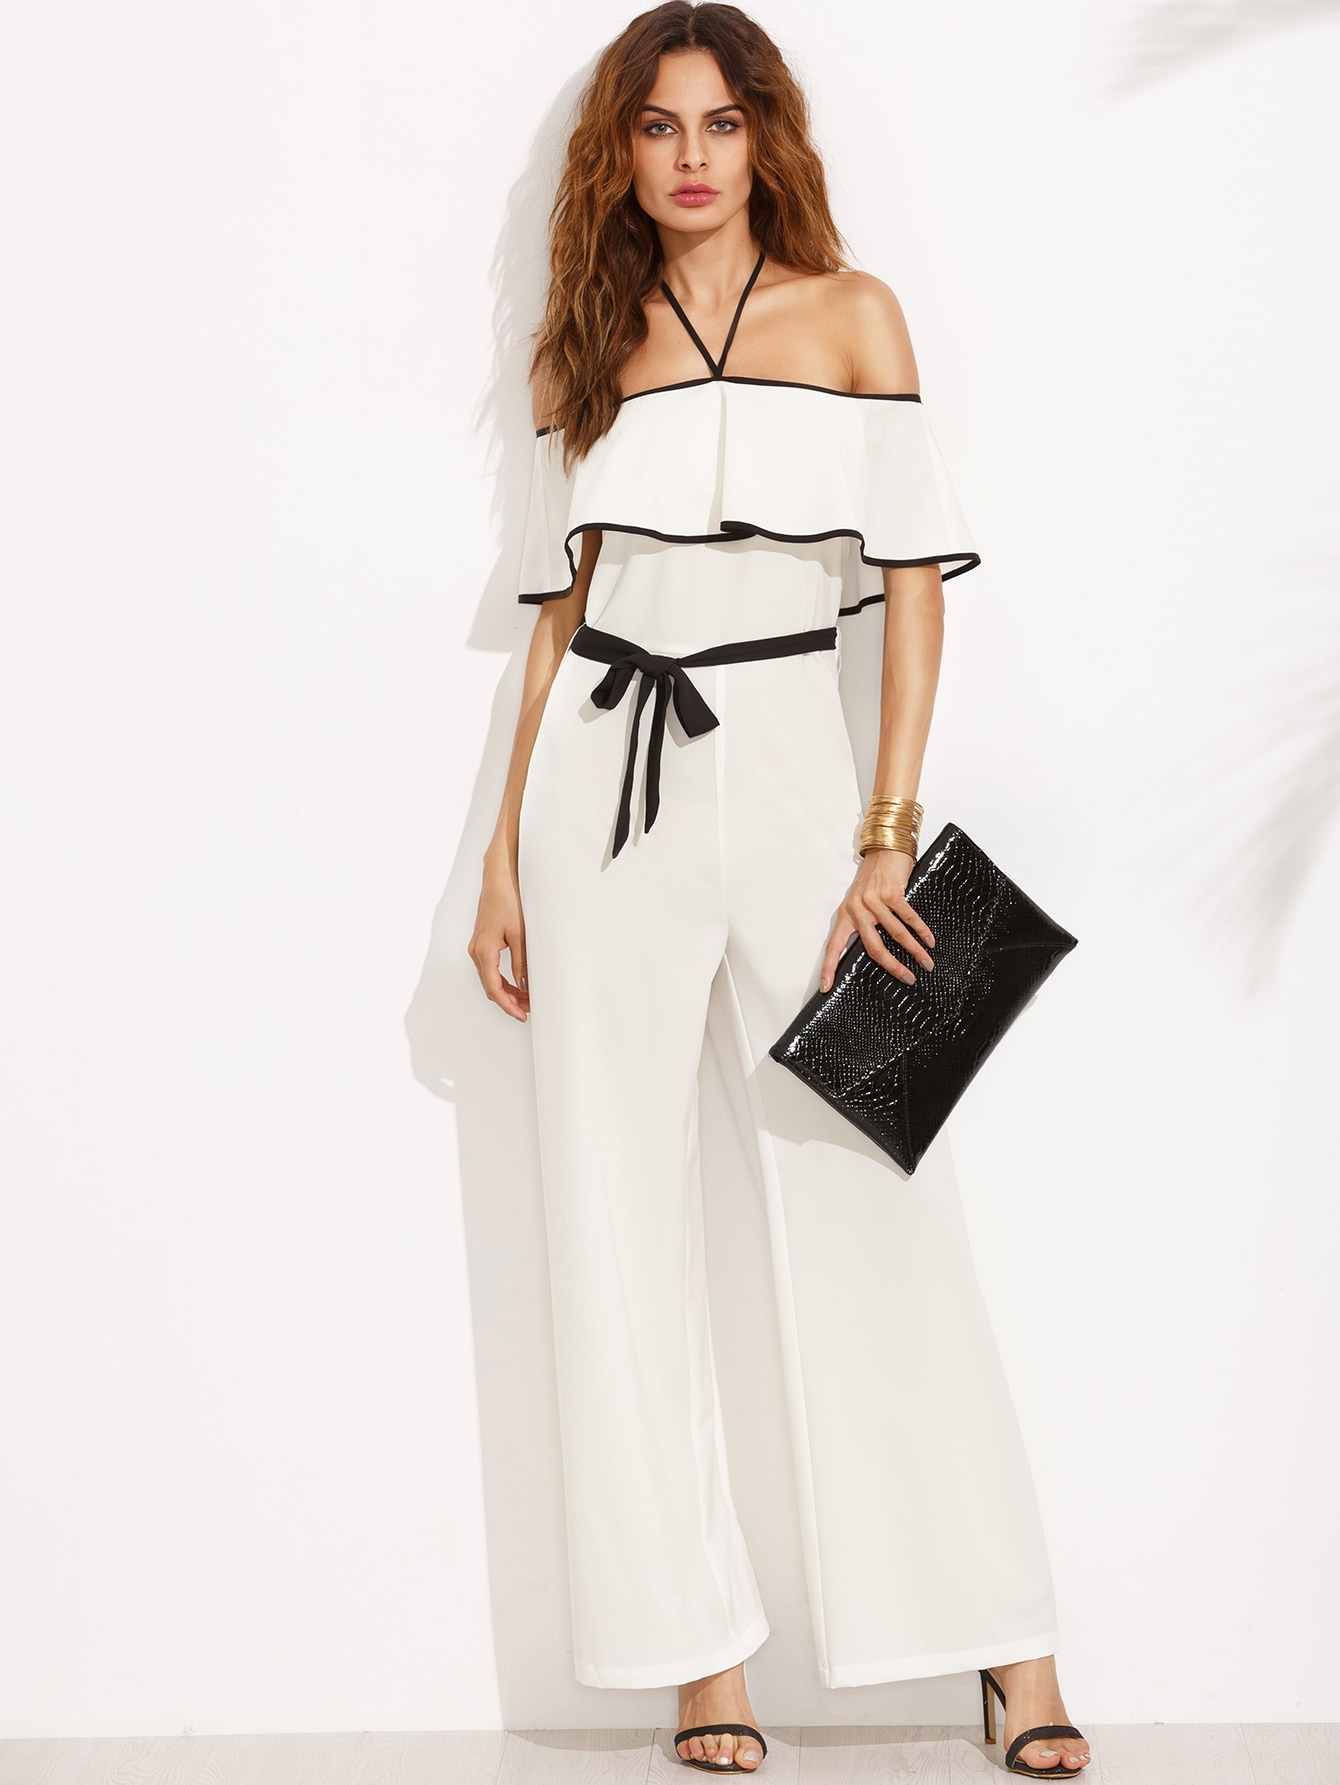 Black and White Halter Ruffle Tie Waist JumpsuitBlack and White Halter Ruffle Tie Waist Jumpsuit<br><br>color: White<br>size: L,M,S,XS